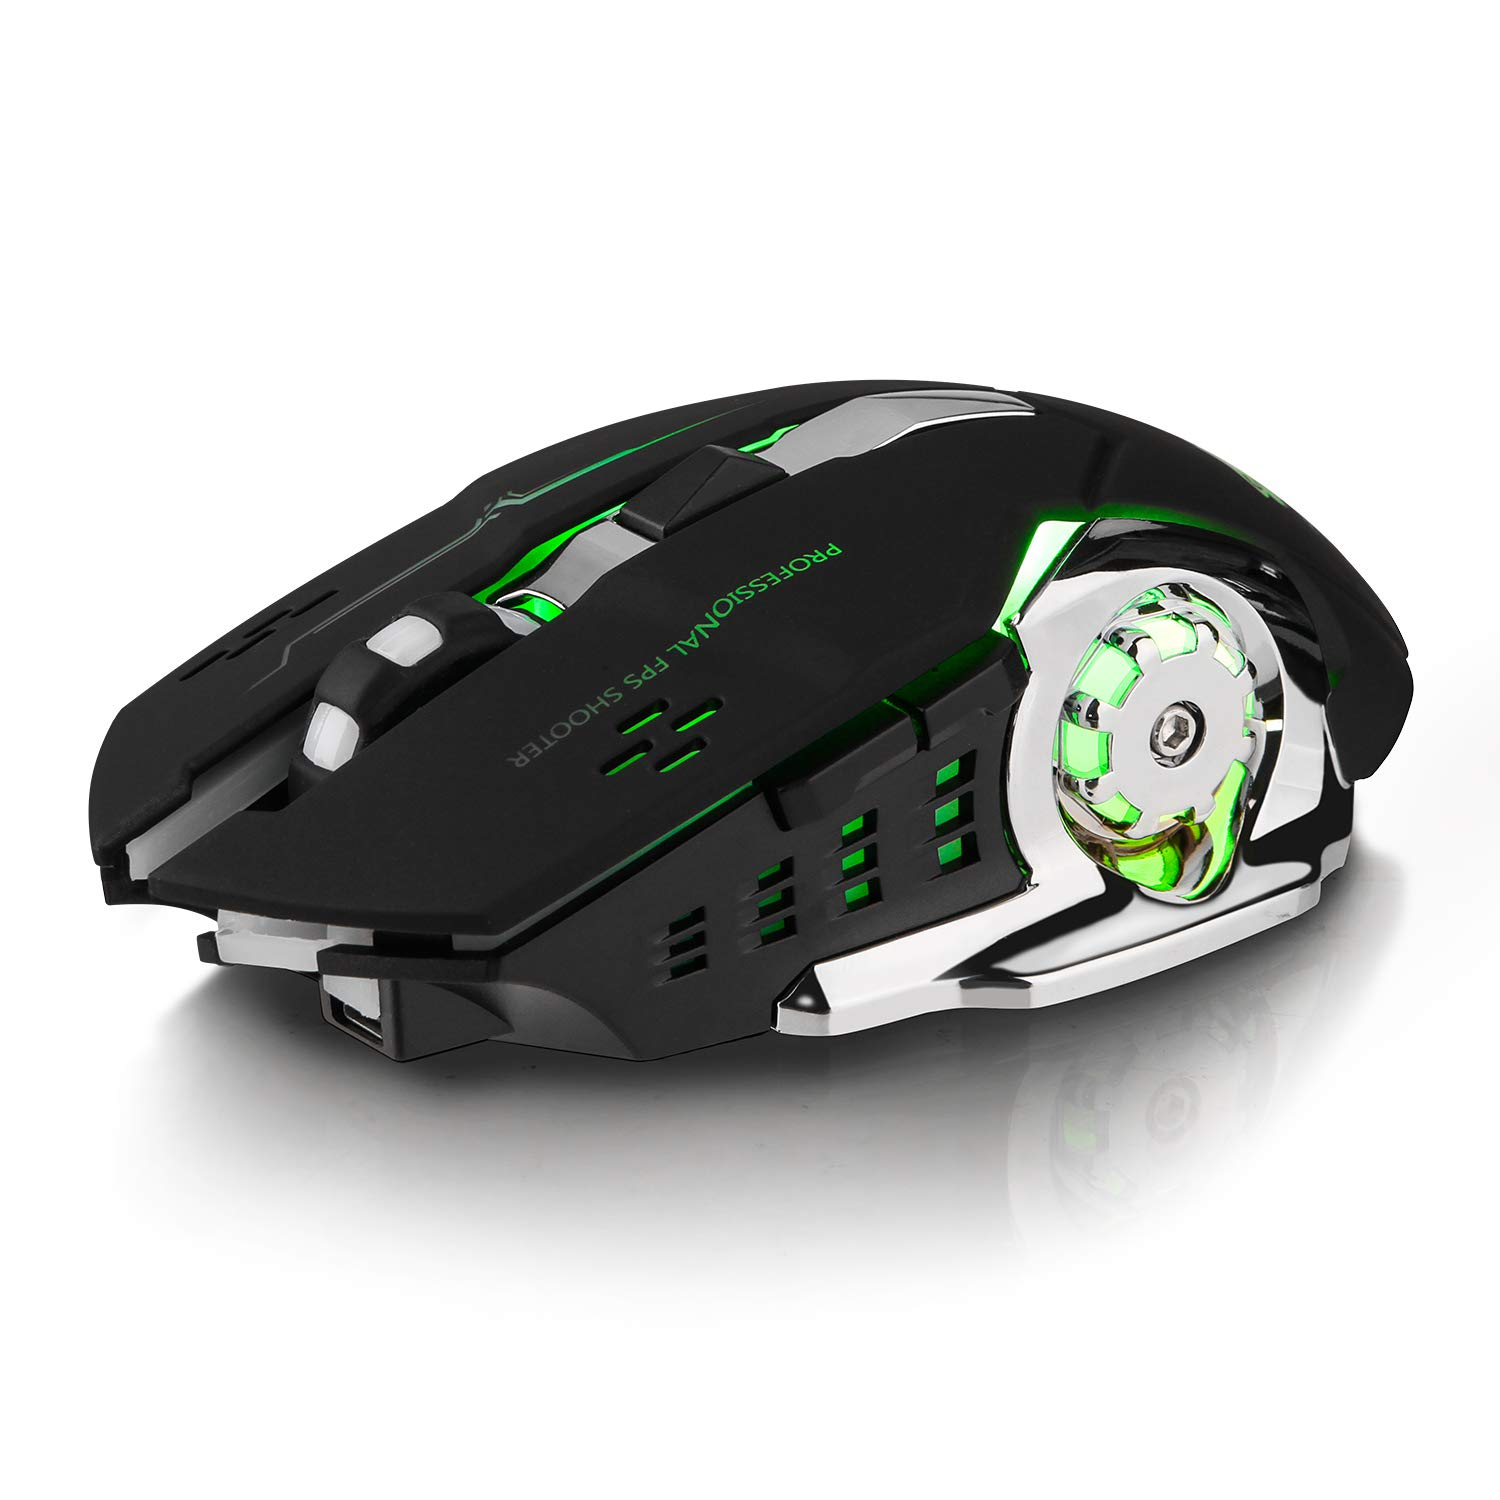 Mouse Gamer : Image Sin Cable Con 1800 Dpi 7 Colores